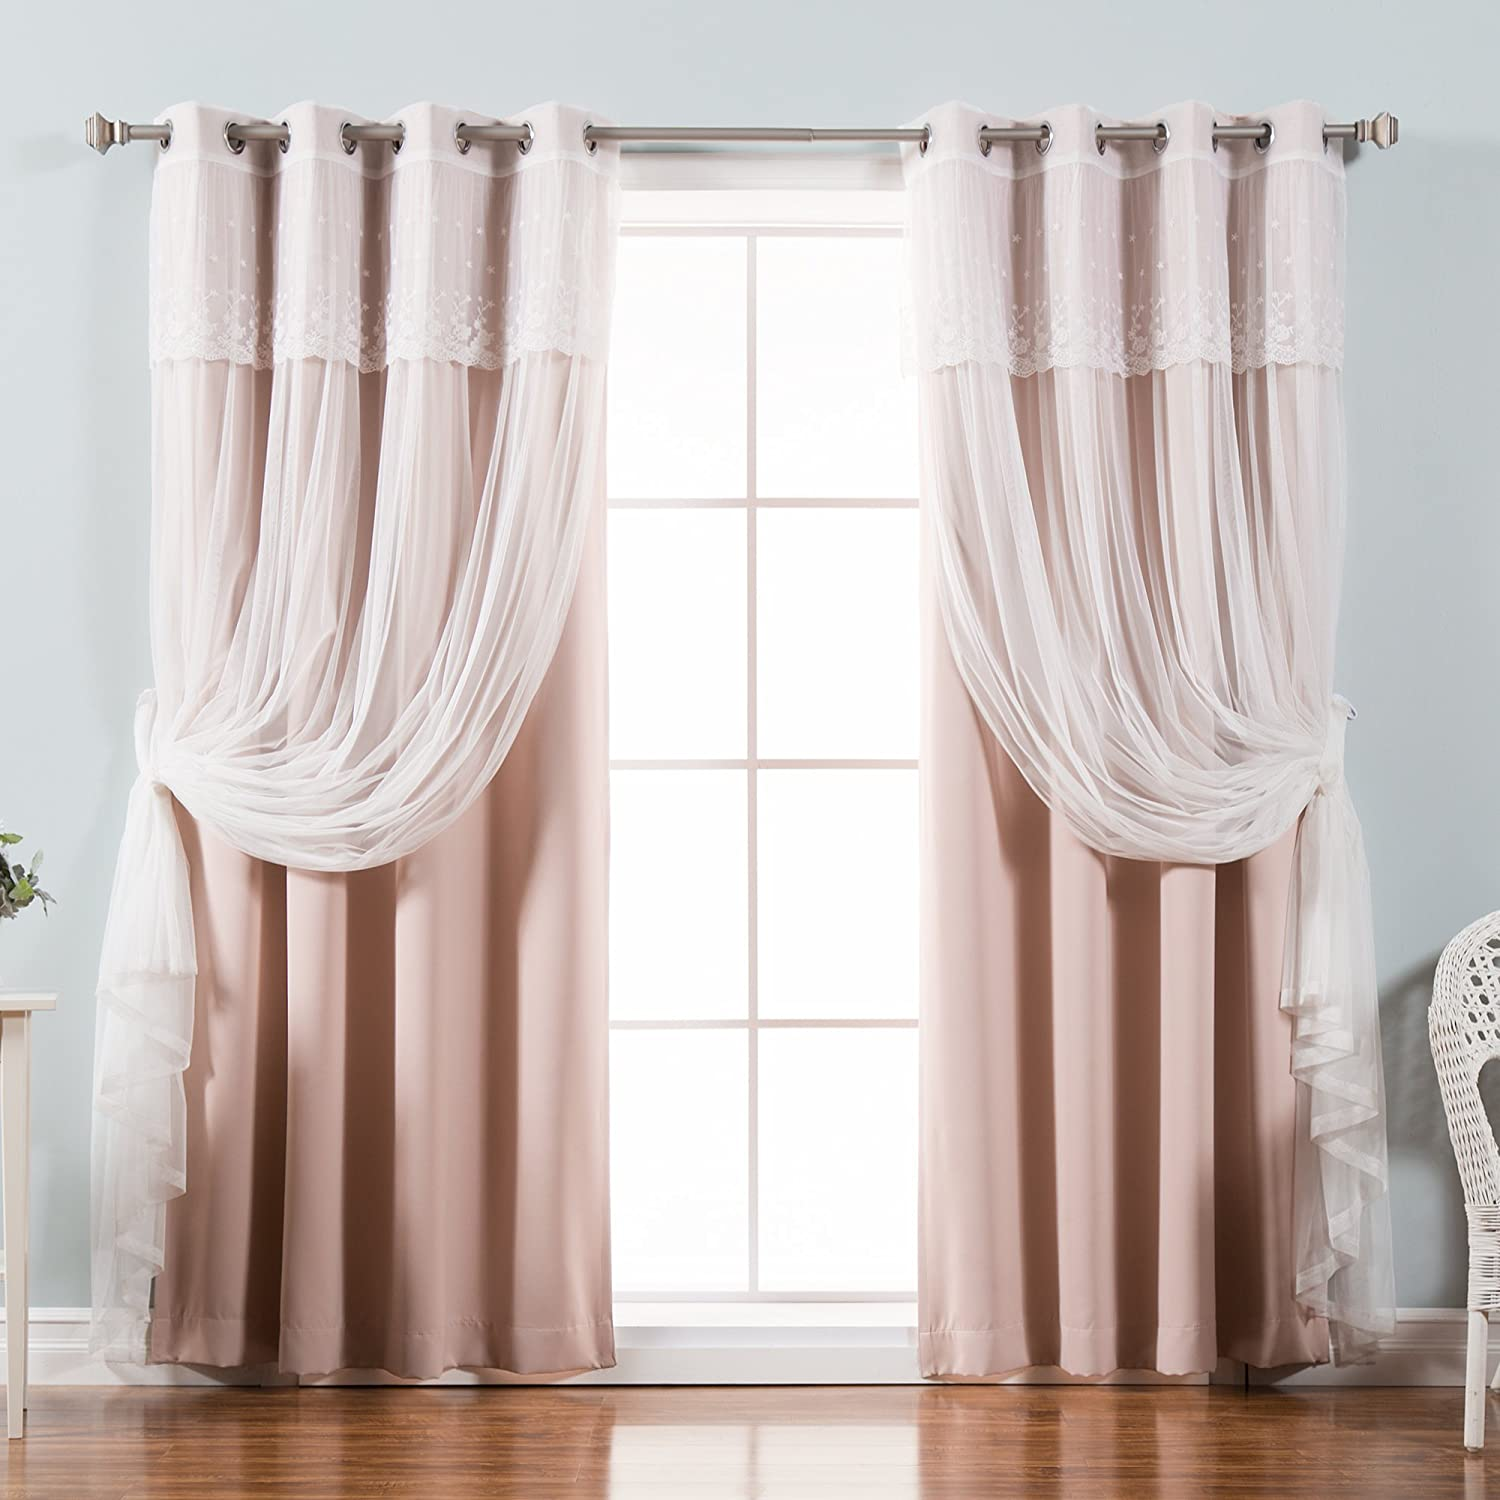 Best Home Fashion Mix & Match Tulle Sheer with Attached Valance & Solid Blackout Curtain Set – Stainless Steel Nickel Grommet Top – Dusty Pink